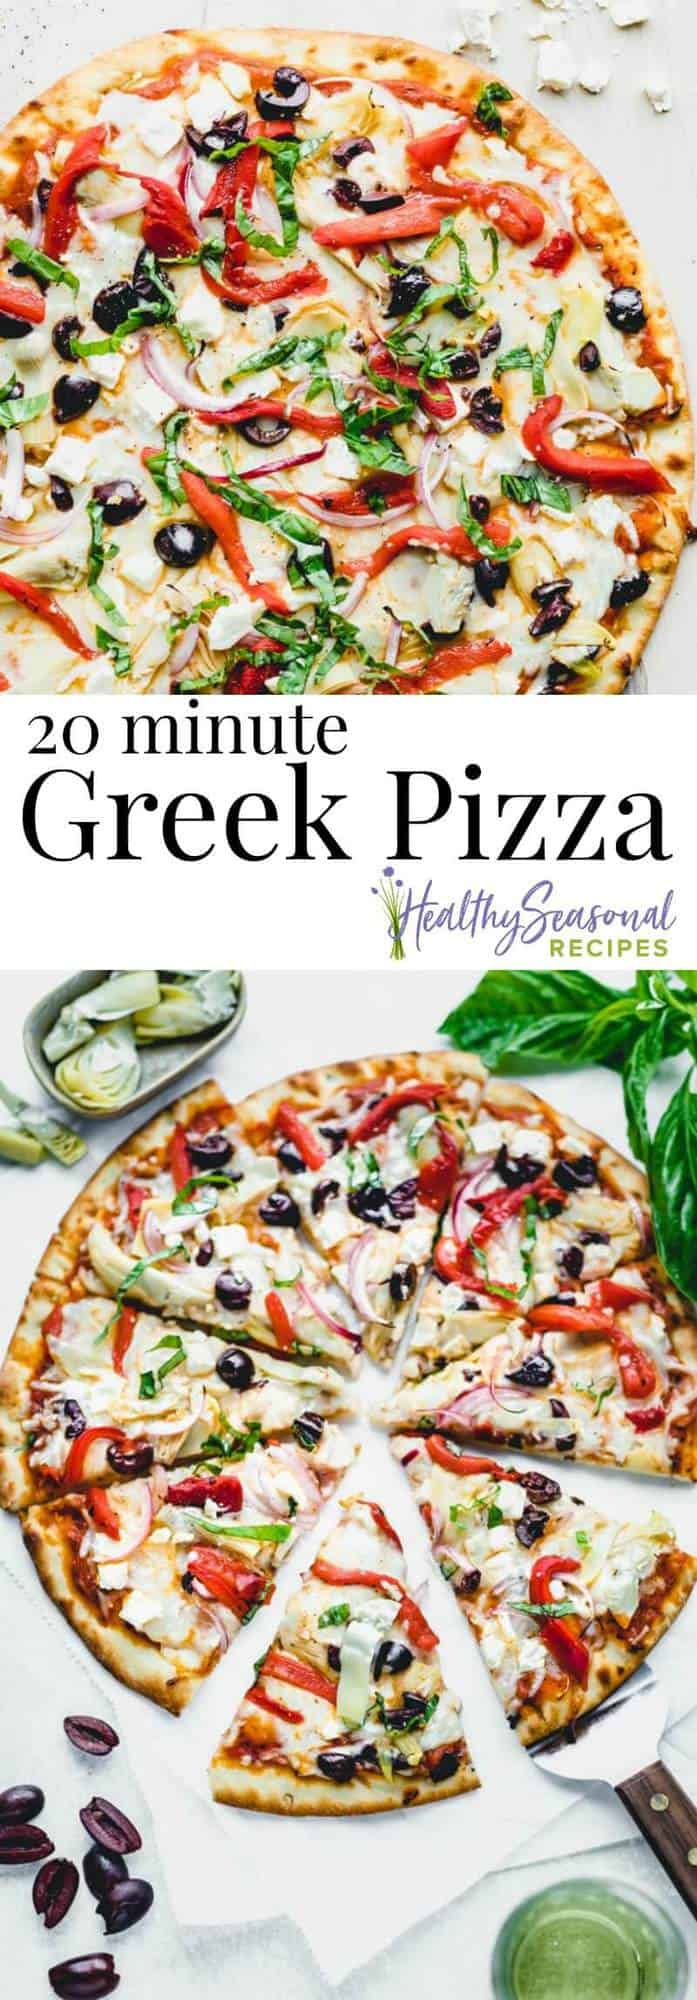 Here\'s an easy homemade Greek Pizza recipe that comes together in only 20 minutes thanks to a few convenience items and pantry staples! It\'s loaded with artichokes, roasted red peppers, feta and black olives. #greekpizza #pizzarecipe #vegetariandinner #20minutemeals